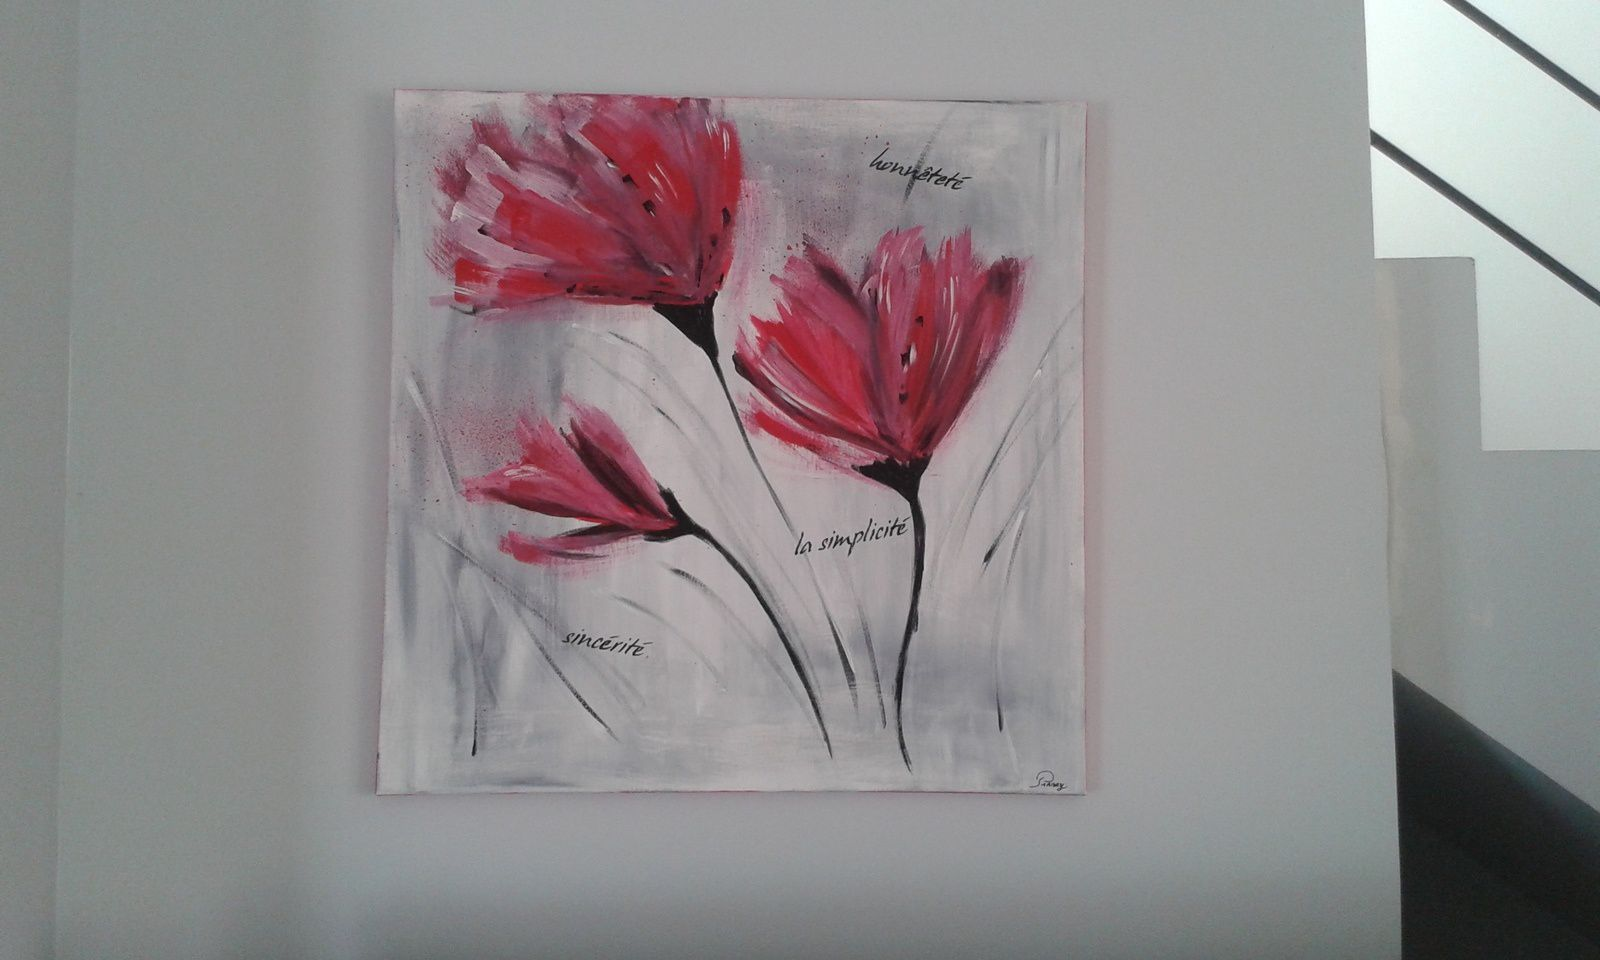 Tableau Home Deco Moderne Coquelicots Ideecrea Tableaux Modernes Mix Media Home